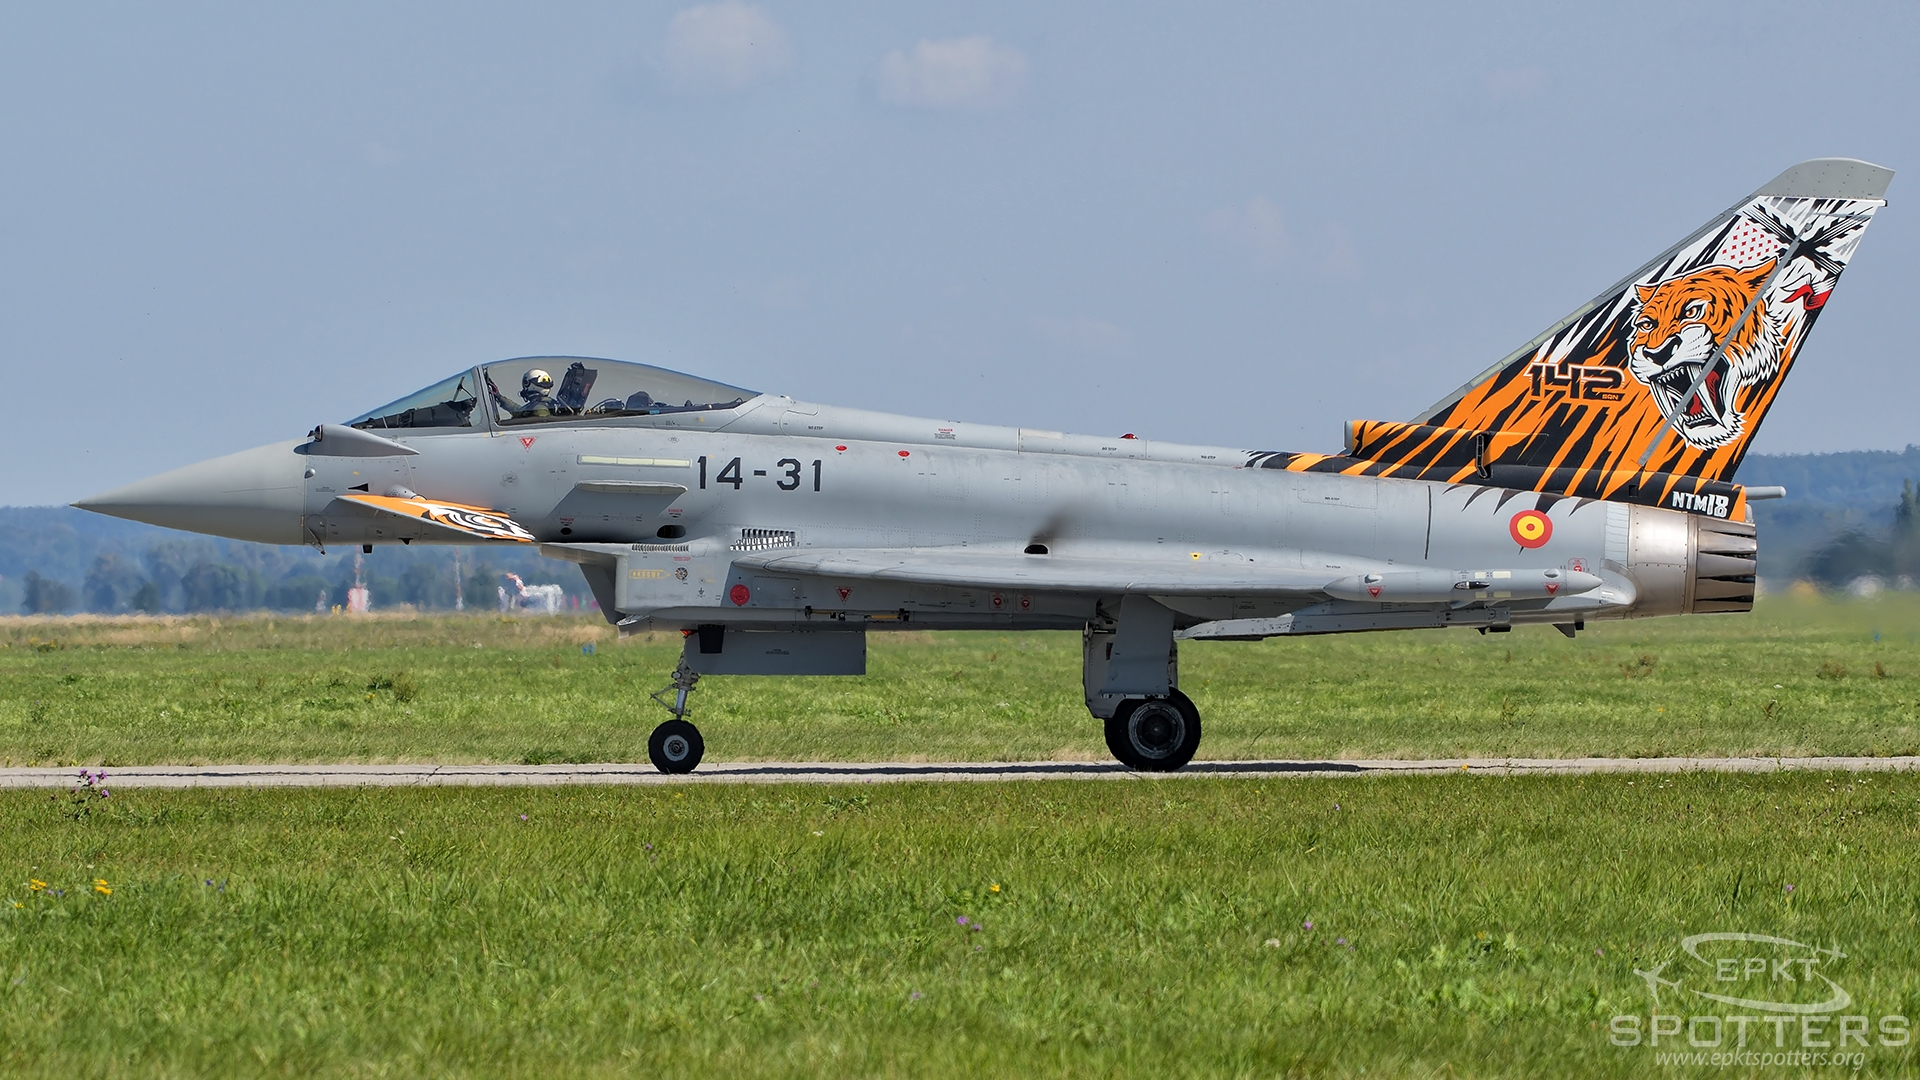 C.16-71 - Eurofighter Typhoon S  (Spain - Air Force) / Leos Janacek Airport - Ostrava Czech Republic [LKMT/OSR]